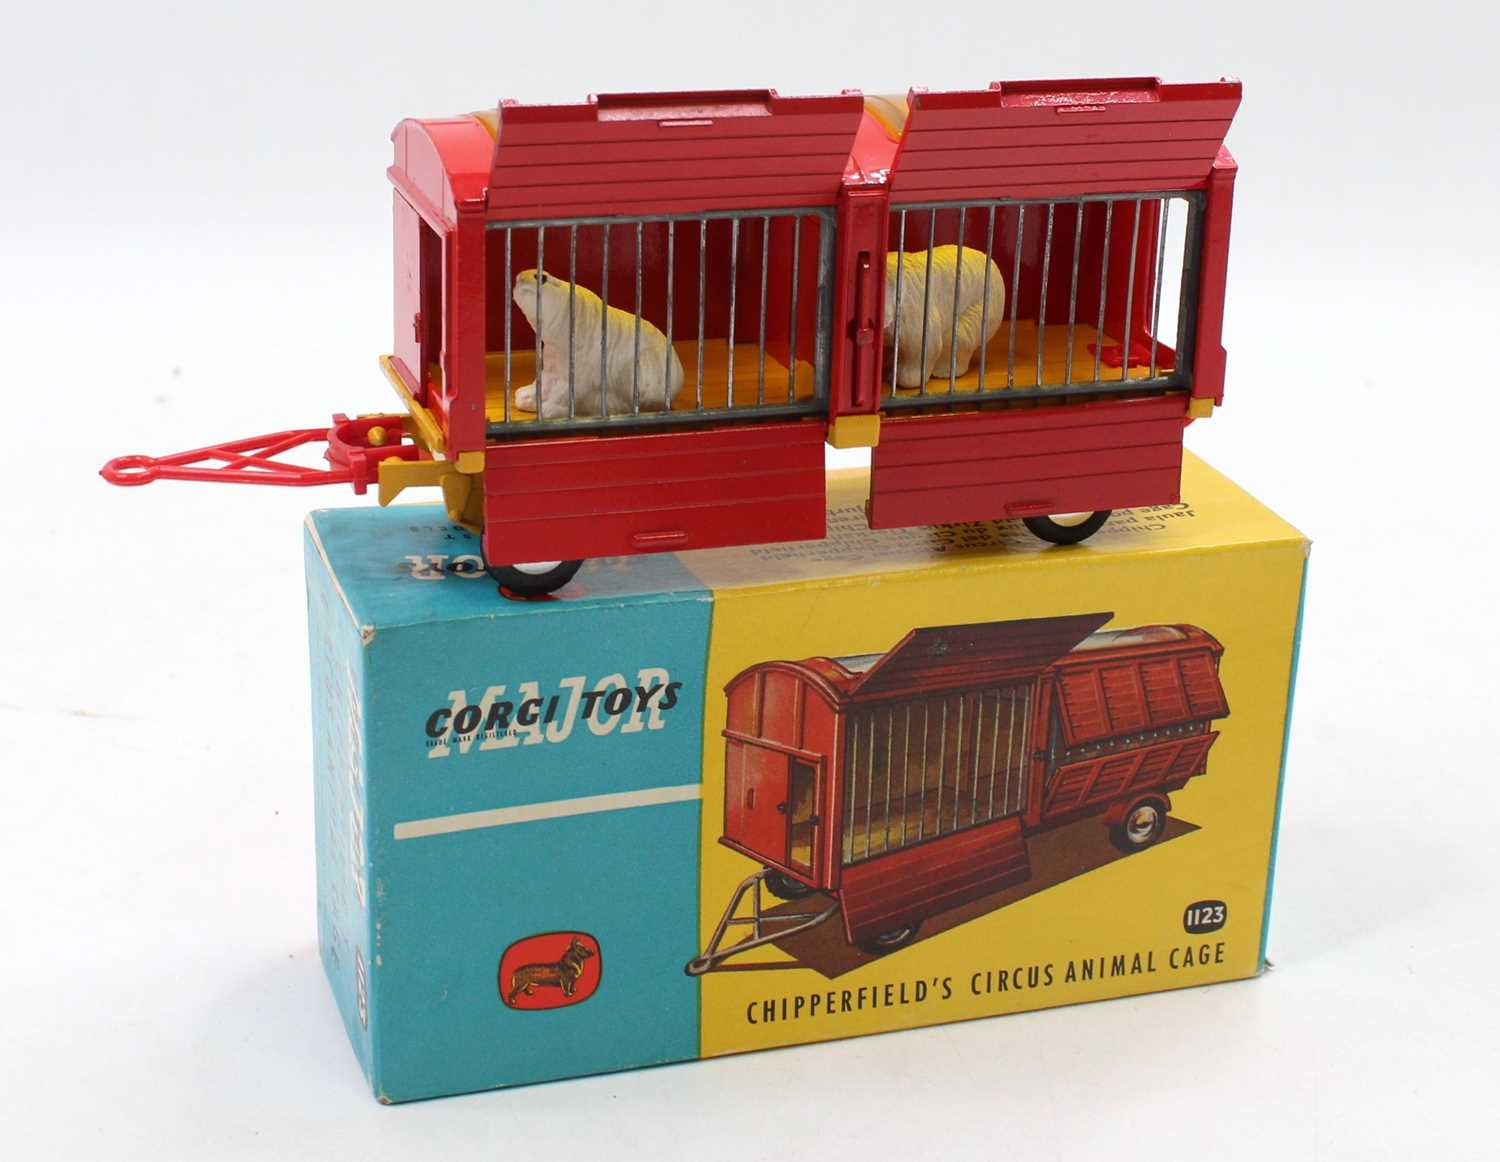 Corgi Toys No. 1123 Chipperfields Circus animal cage comprising of red and yellow body with flat